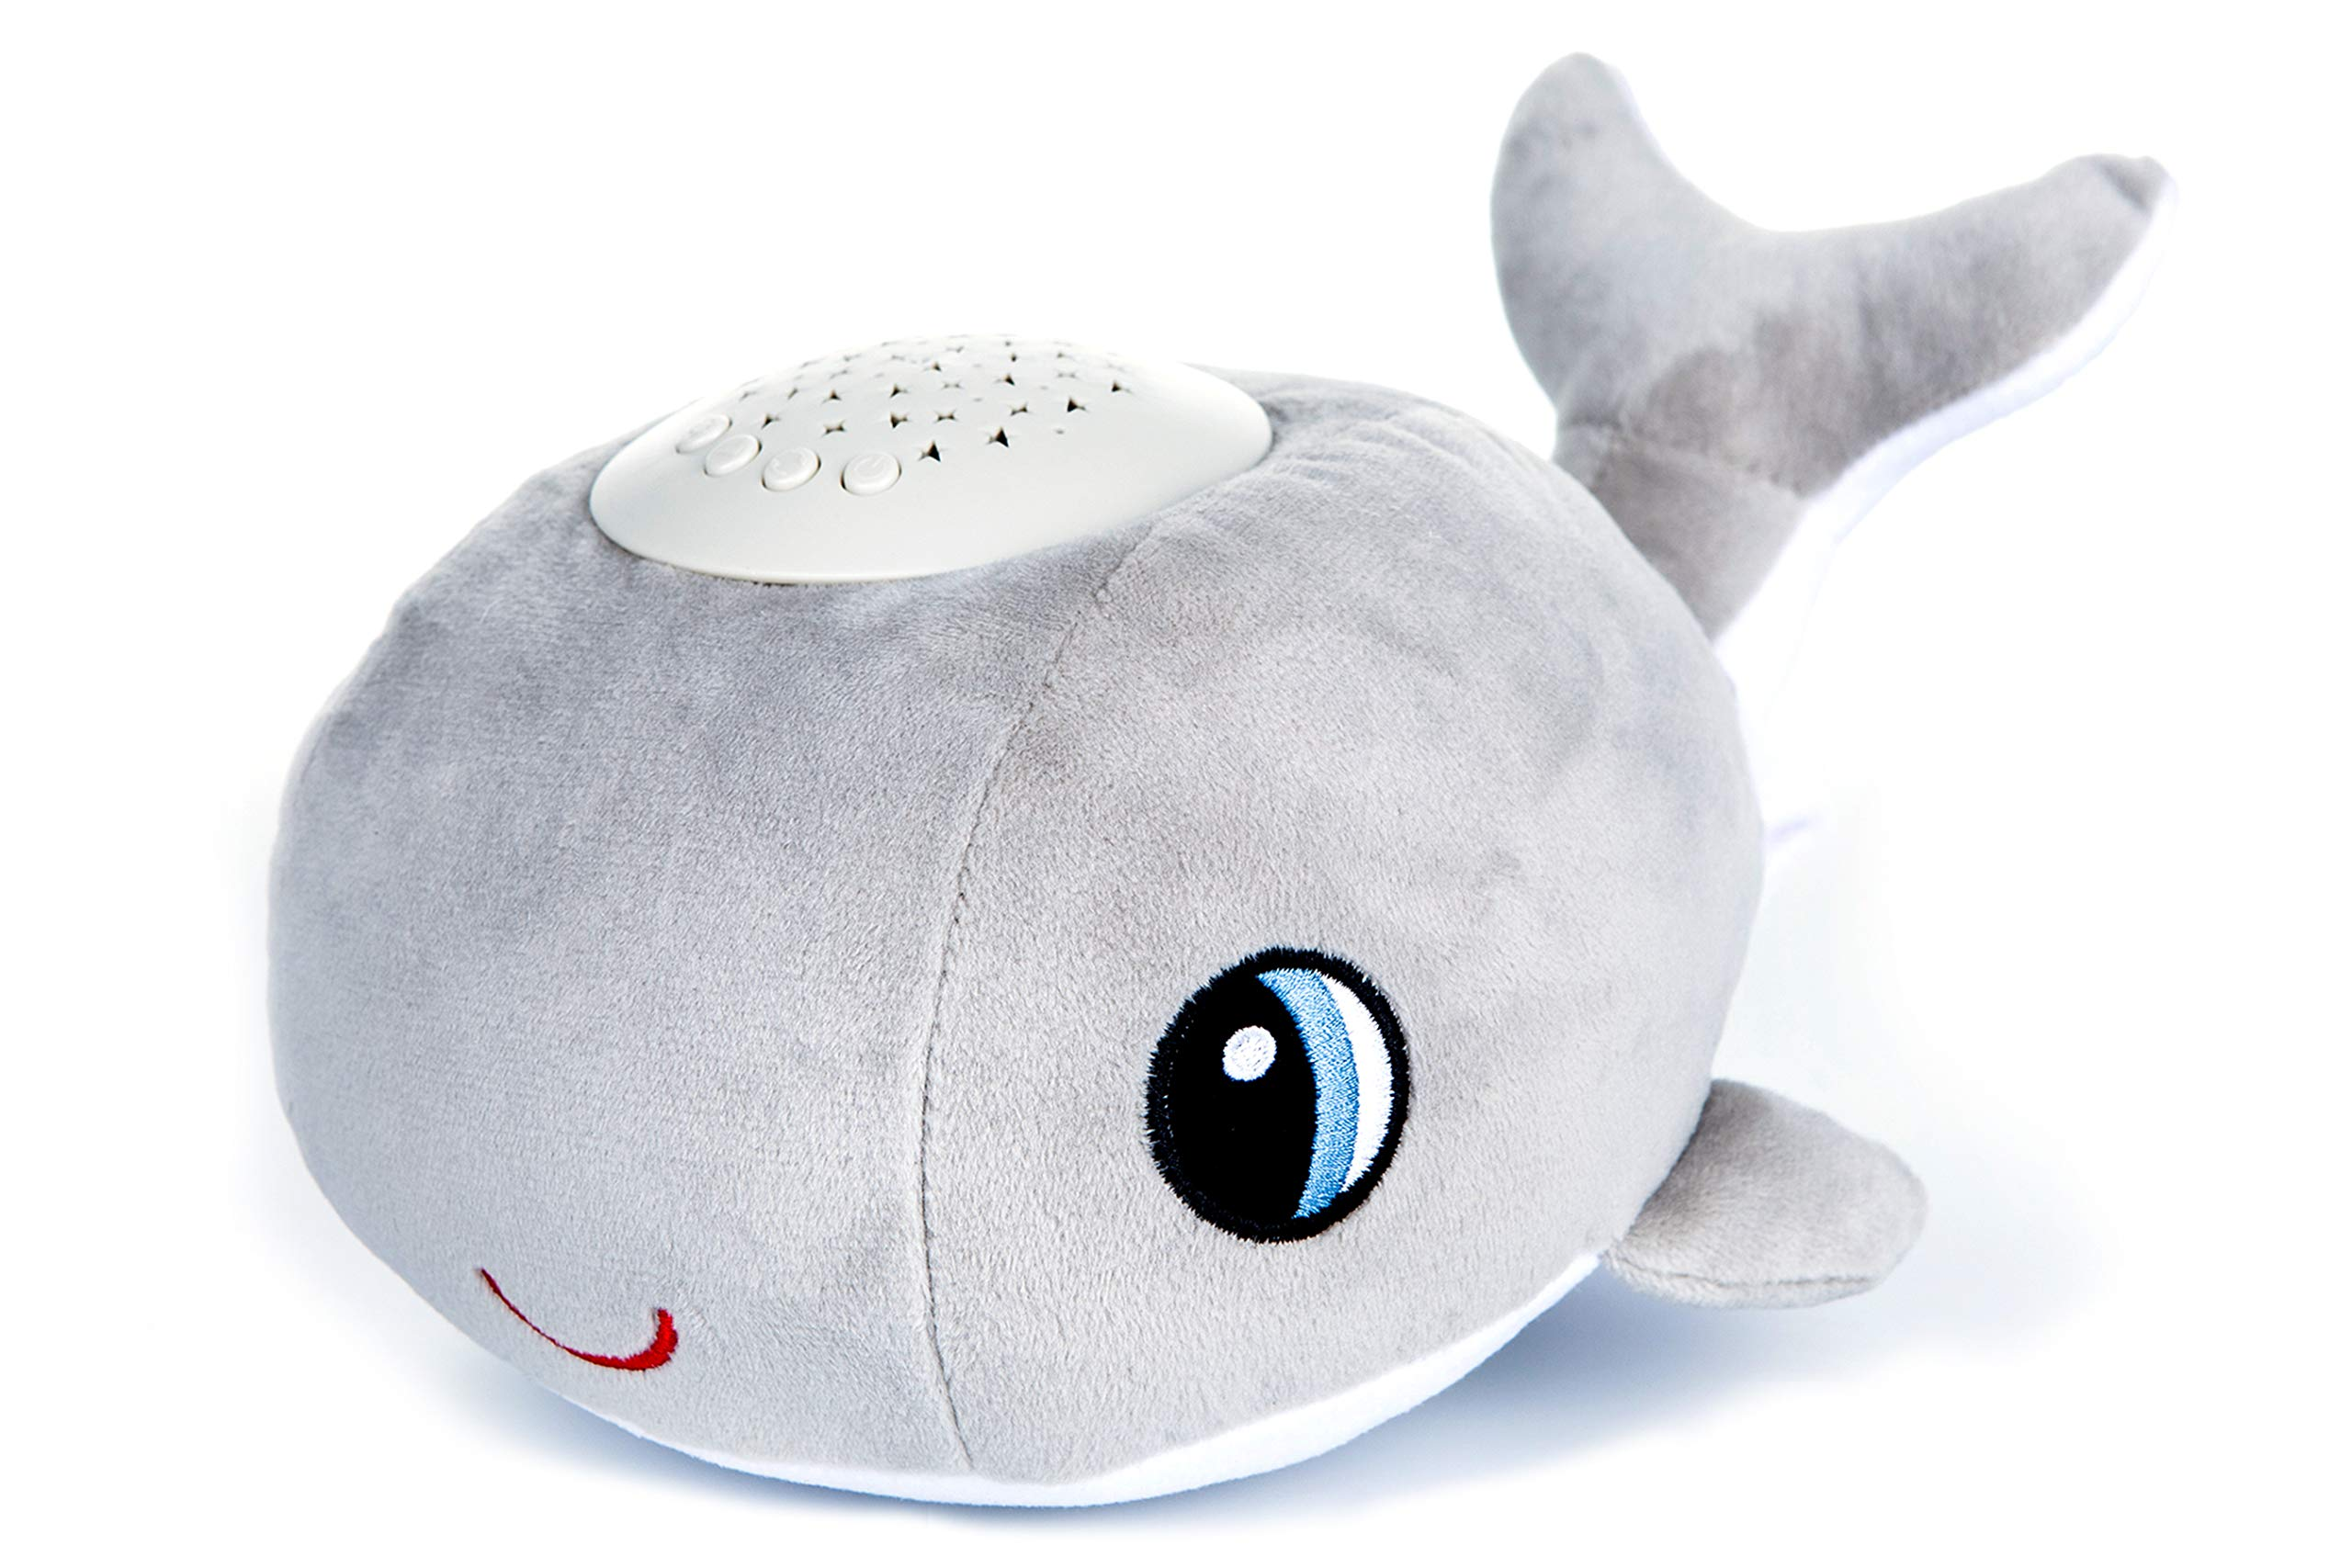 Baby Sleep Soother Sound Machine - Favorite Baby Shower Gift - Portable Stuffed Animal Light Projector Baby Gift